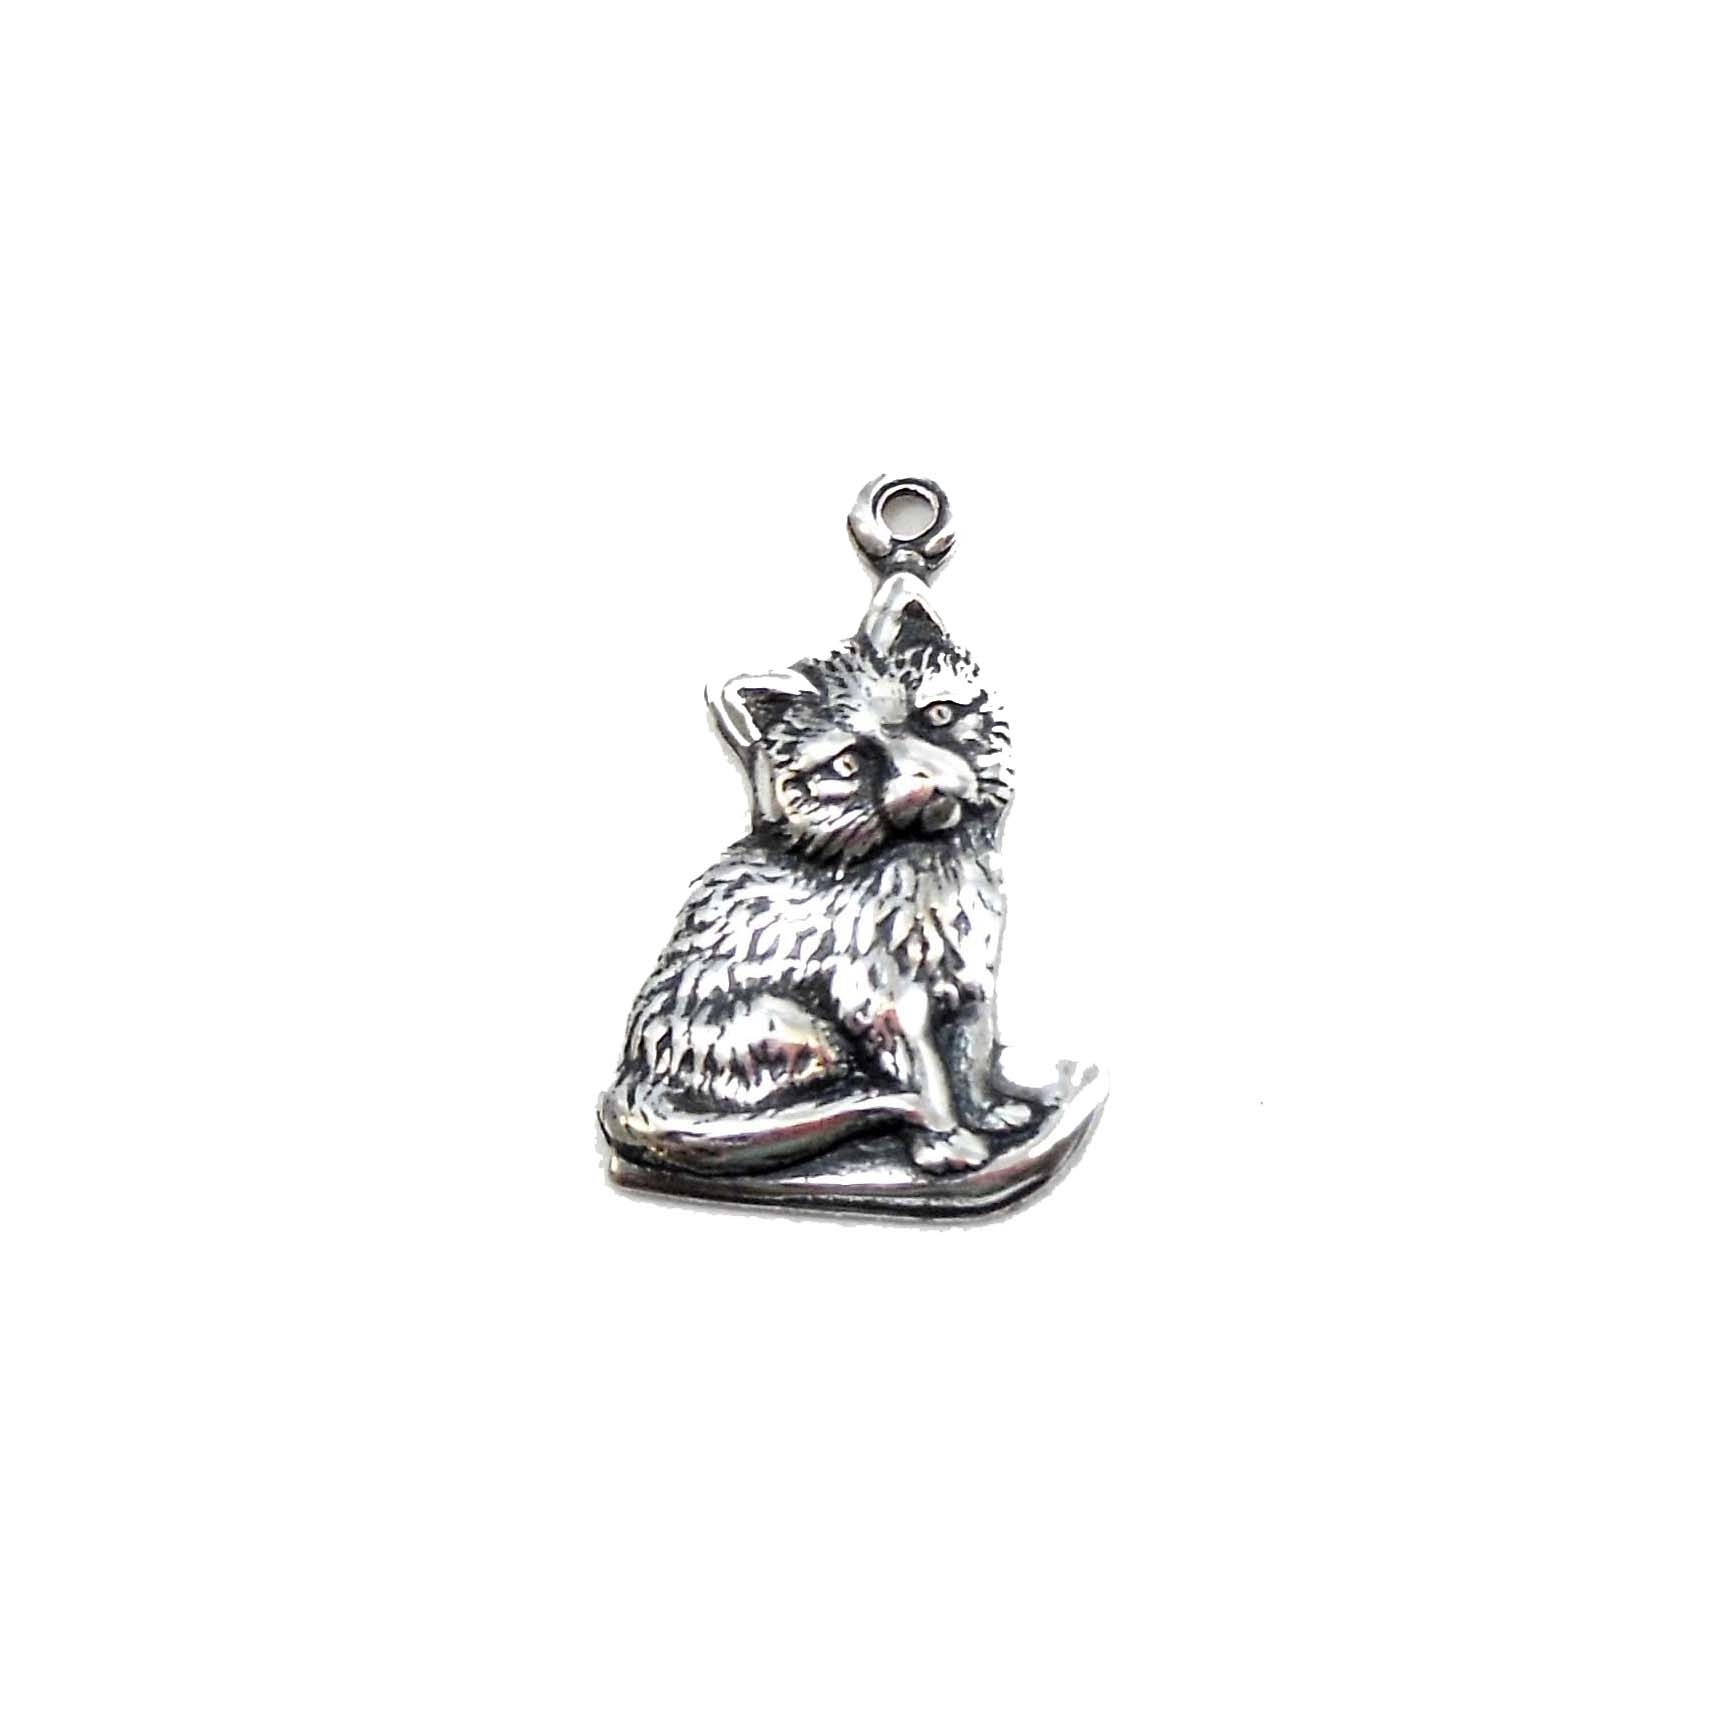 kitty charm, cat charm, kitty, cat, charm, pendent, silverplate, silverware, silverplate silverware, 18x14mm, antique silver, us made, nickel free, B'sue Boutiques, jewelry making, vintage supplies, jewelry supplies, jewelry findings, 03302